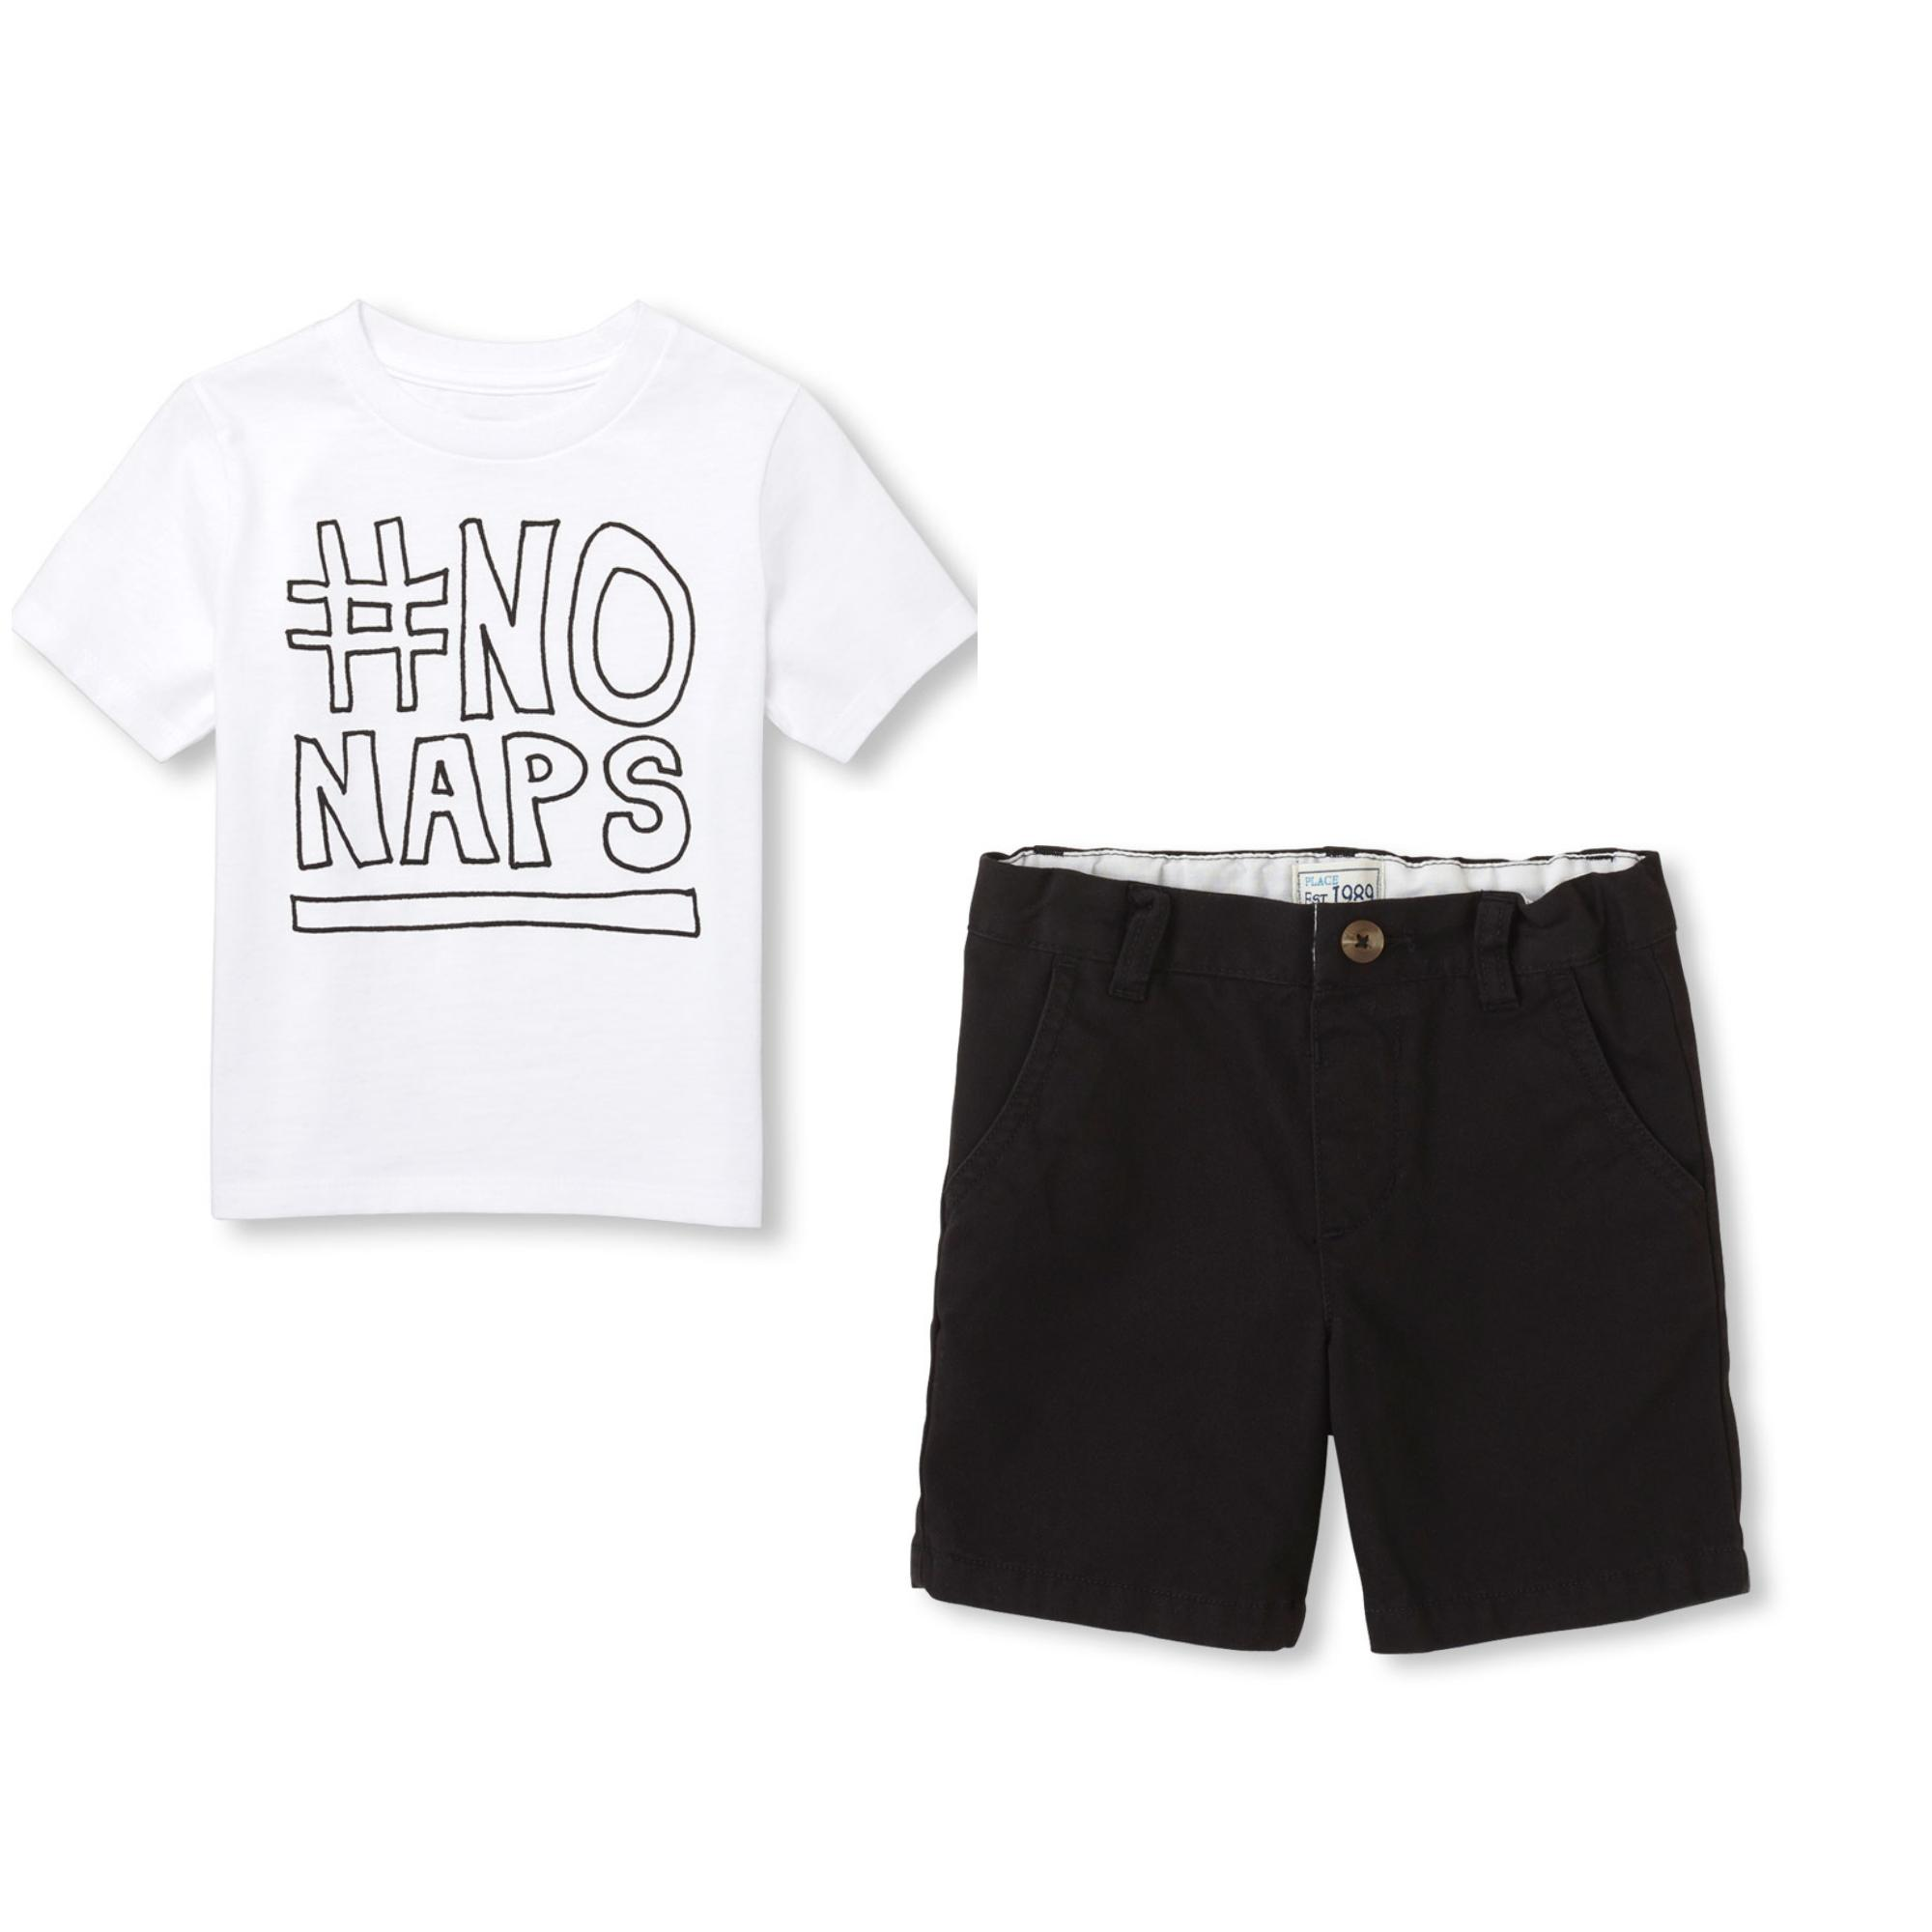 THE CHILDREN'S PLACE SHORT SLEEVE 'HASHTAG NO NAPS' GRAPHIC TEE & CHINO SHORTS